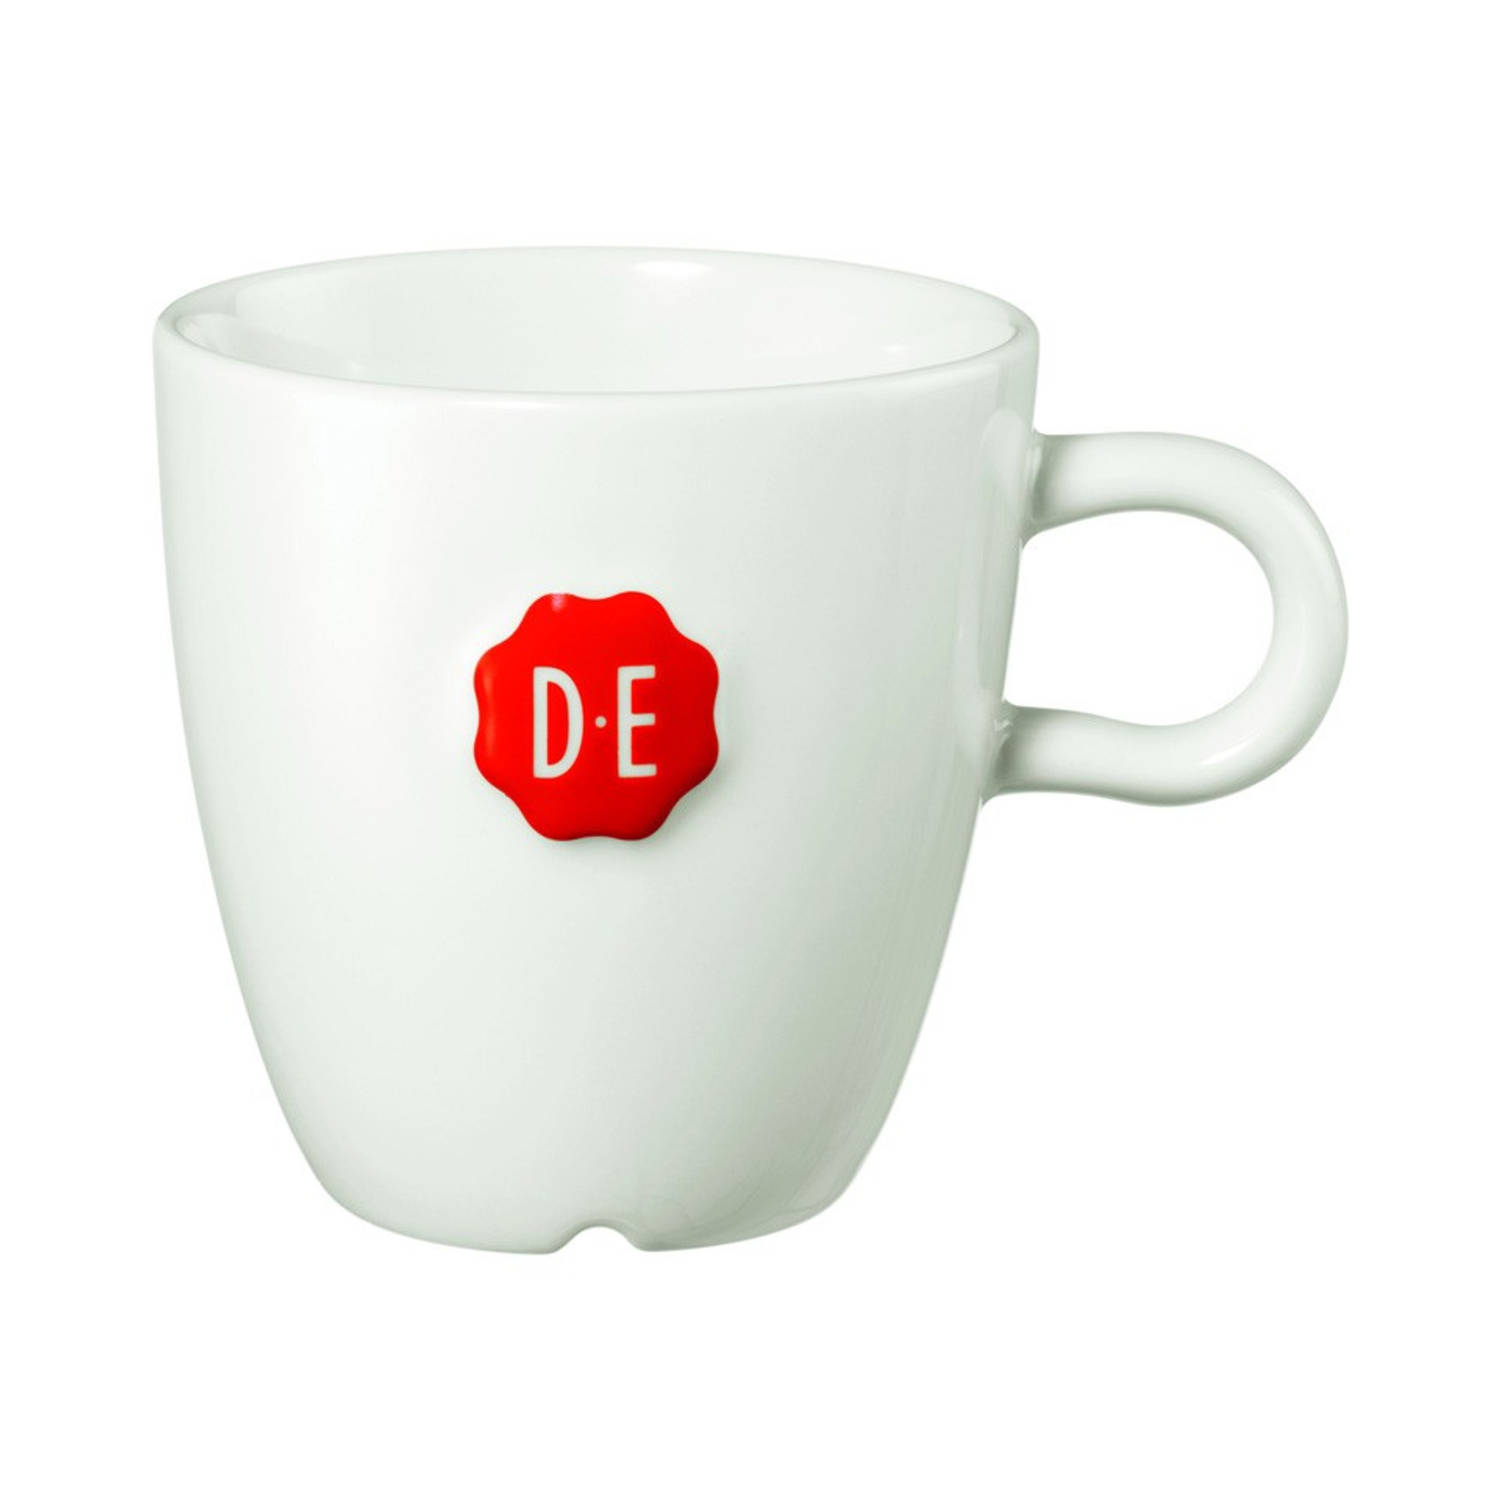 Douwe Egberts cappuccinomok medium - 27 cl - wit